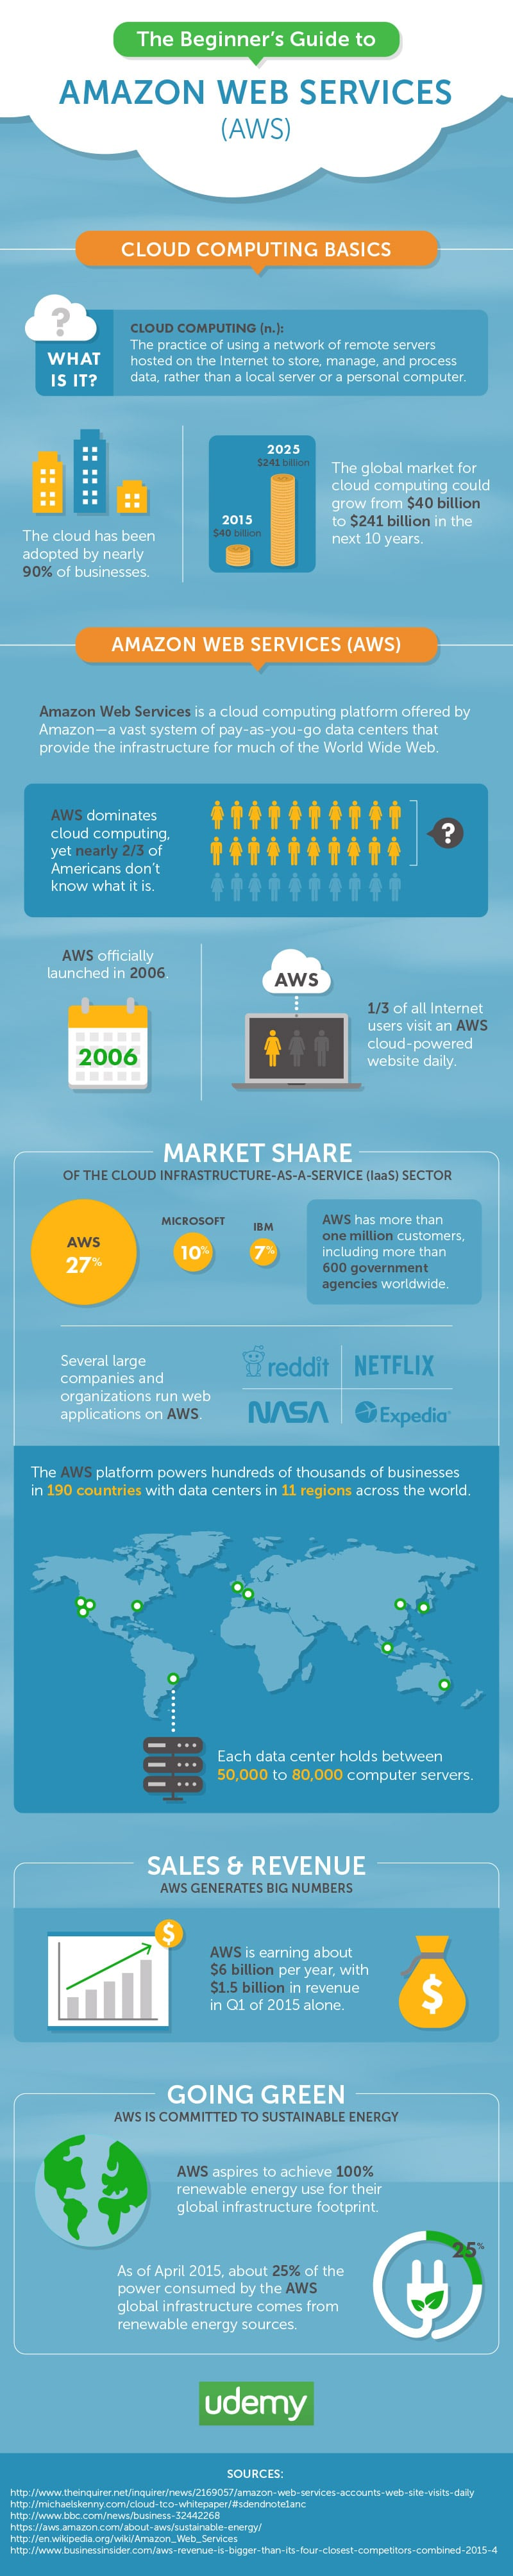 Beginner's Guide to Amazon Web Services (AWS) - Infographic